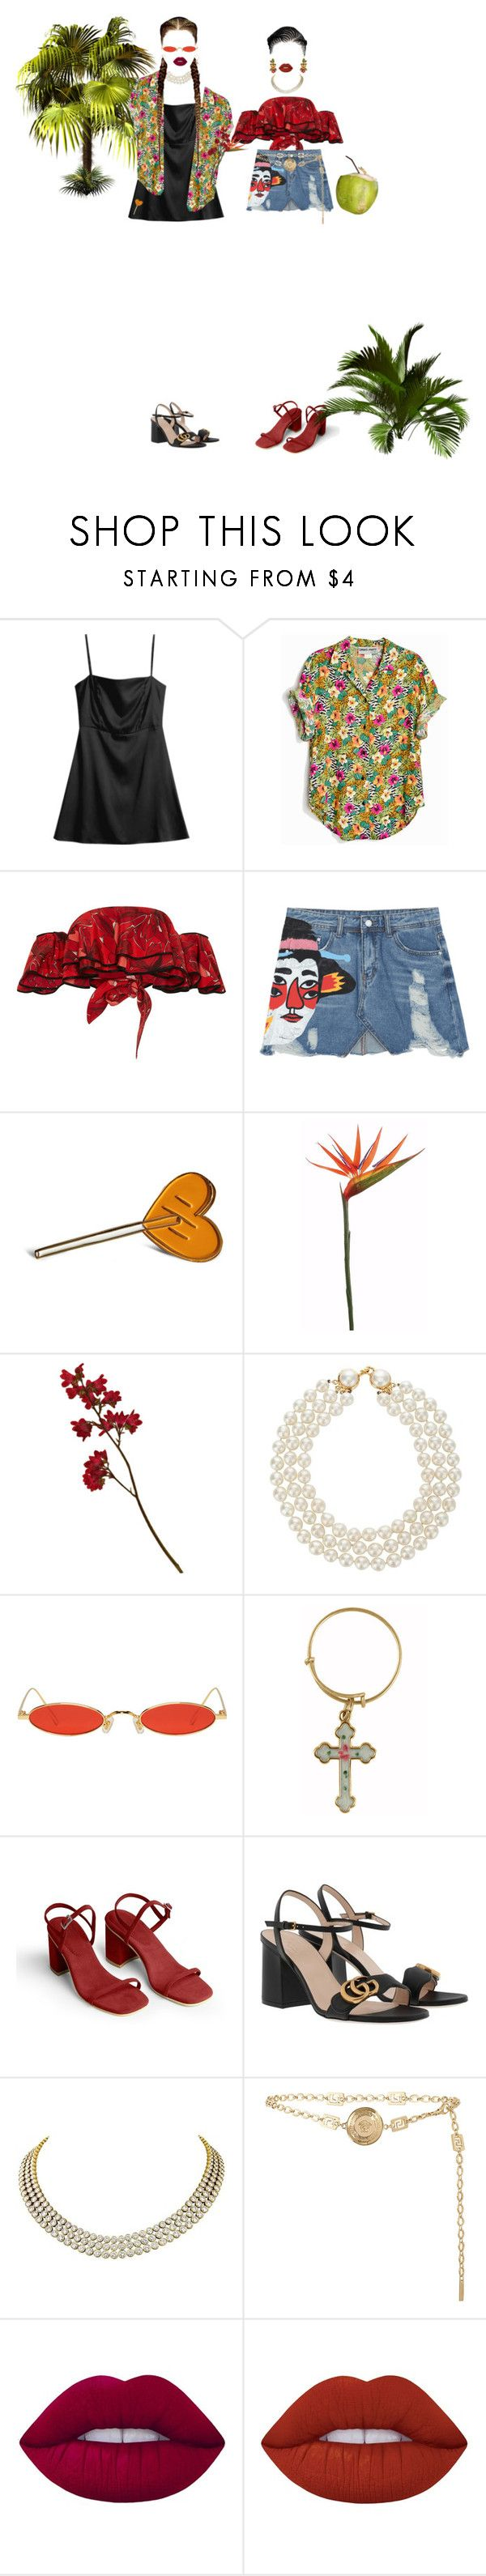 """""""-never gonna be alone"""" by salt-sugar ❤ liked on Polyvore featuring Johanna Ortiz, Chanel, Gentle Monster, Alex and Ani, Gucci, Harry Winston, Versace, Lime Crime and Dolce&Gabbana"""